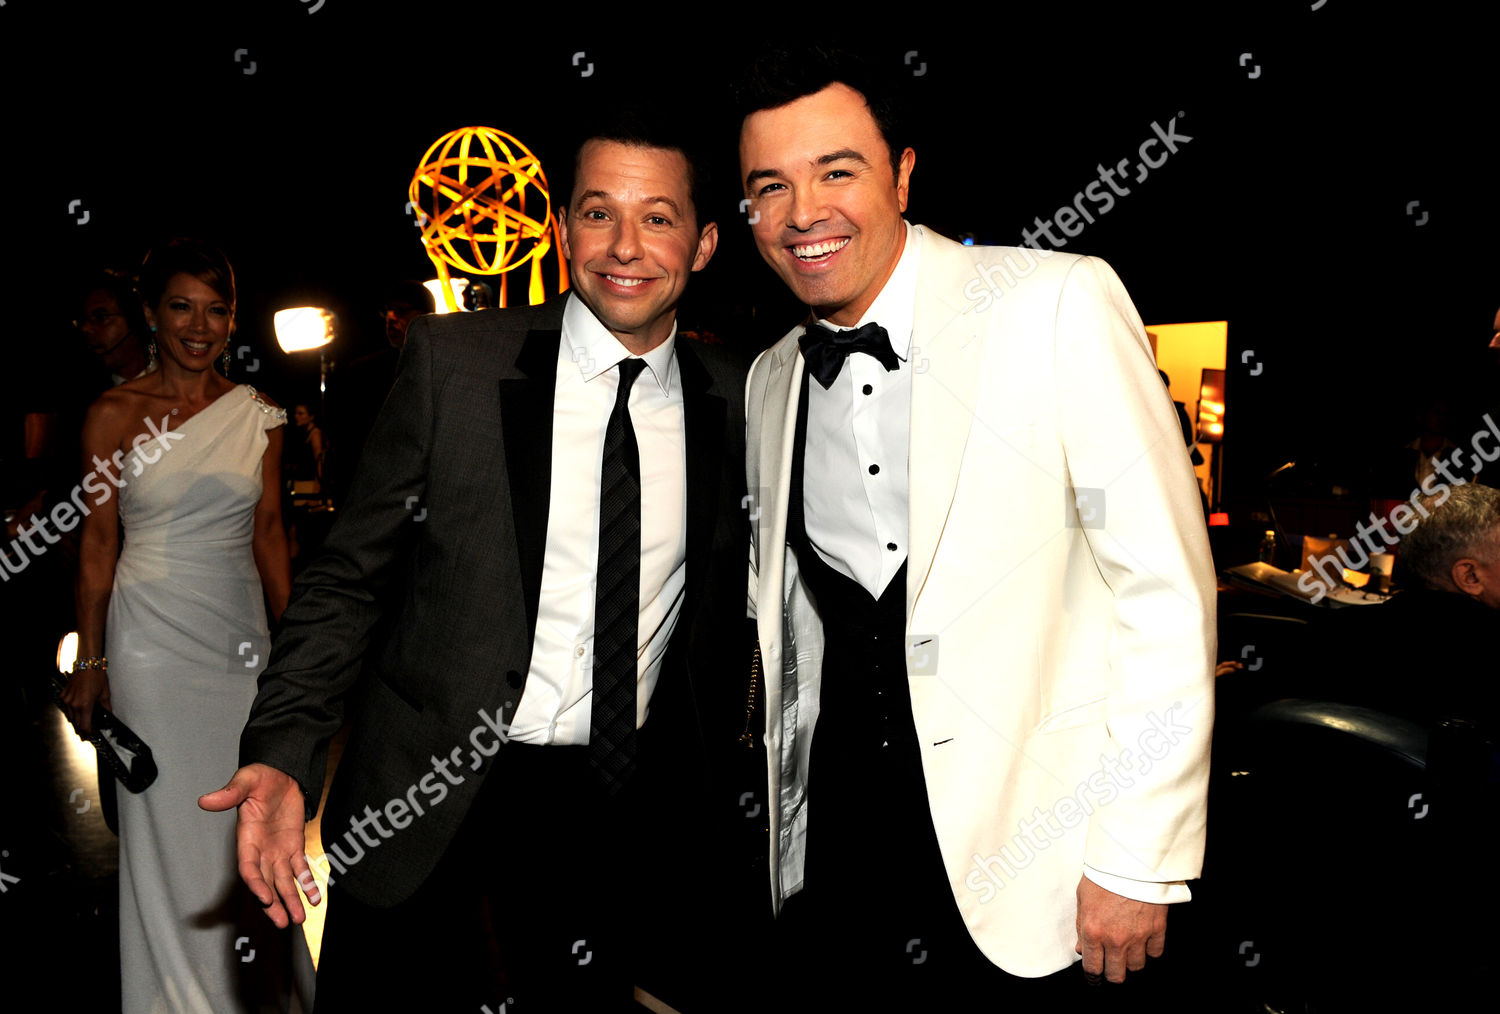 Stock photo of 64th Primetime Emmy Awards - Backstage & Audience, Los Angeles, USA